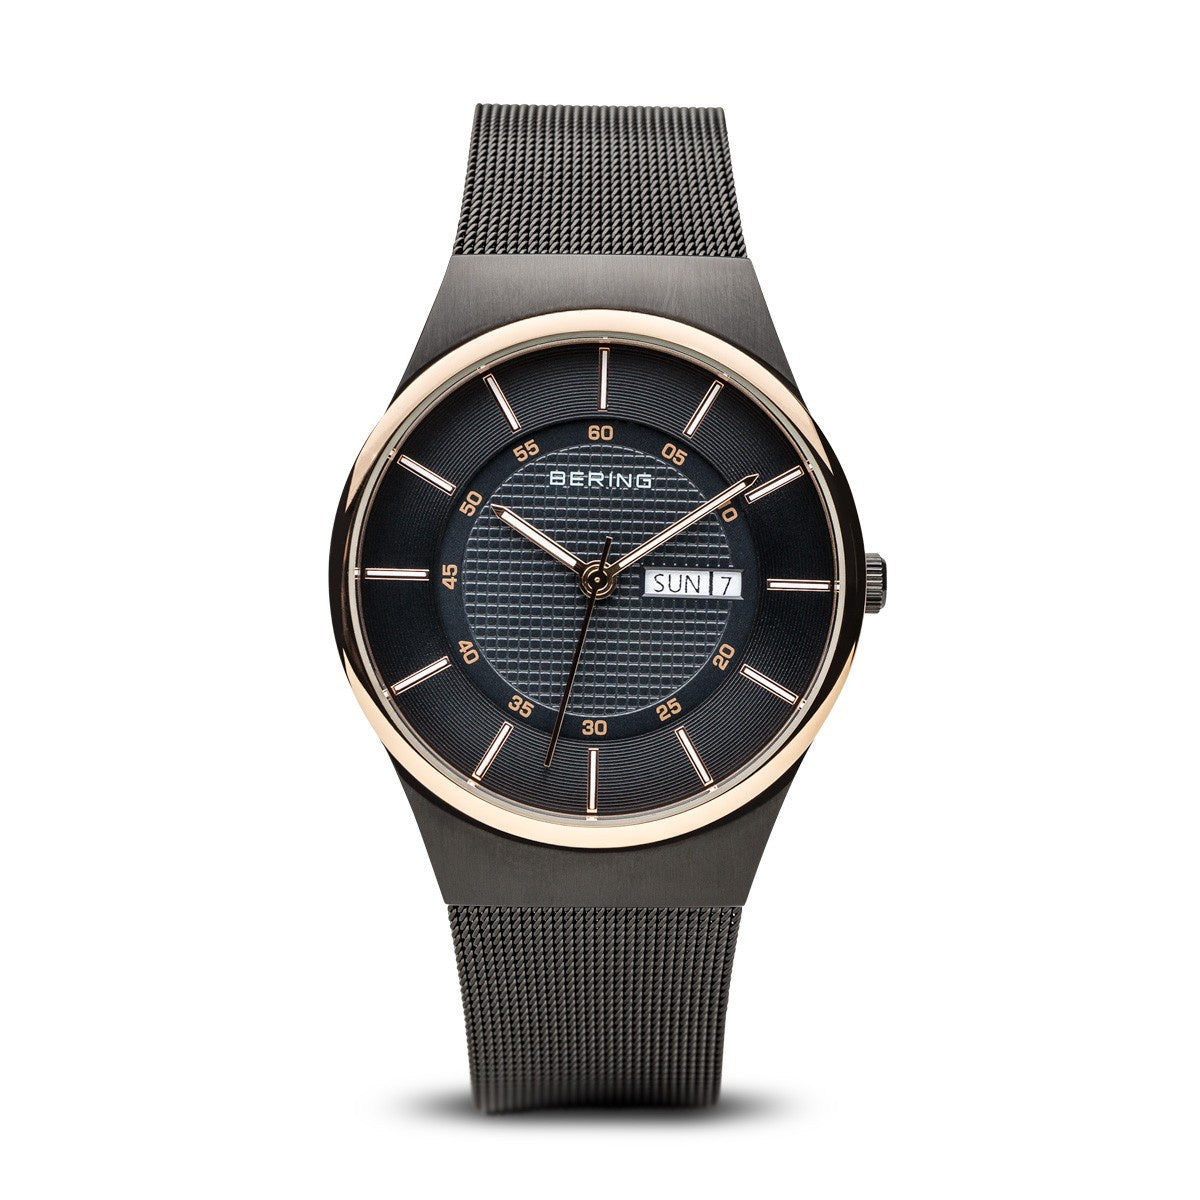 Bering Mens Classic Brushed Black Watch 12939-166 - Robert Openshaw Fine Jewellery